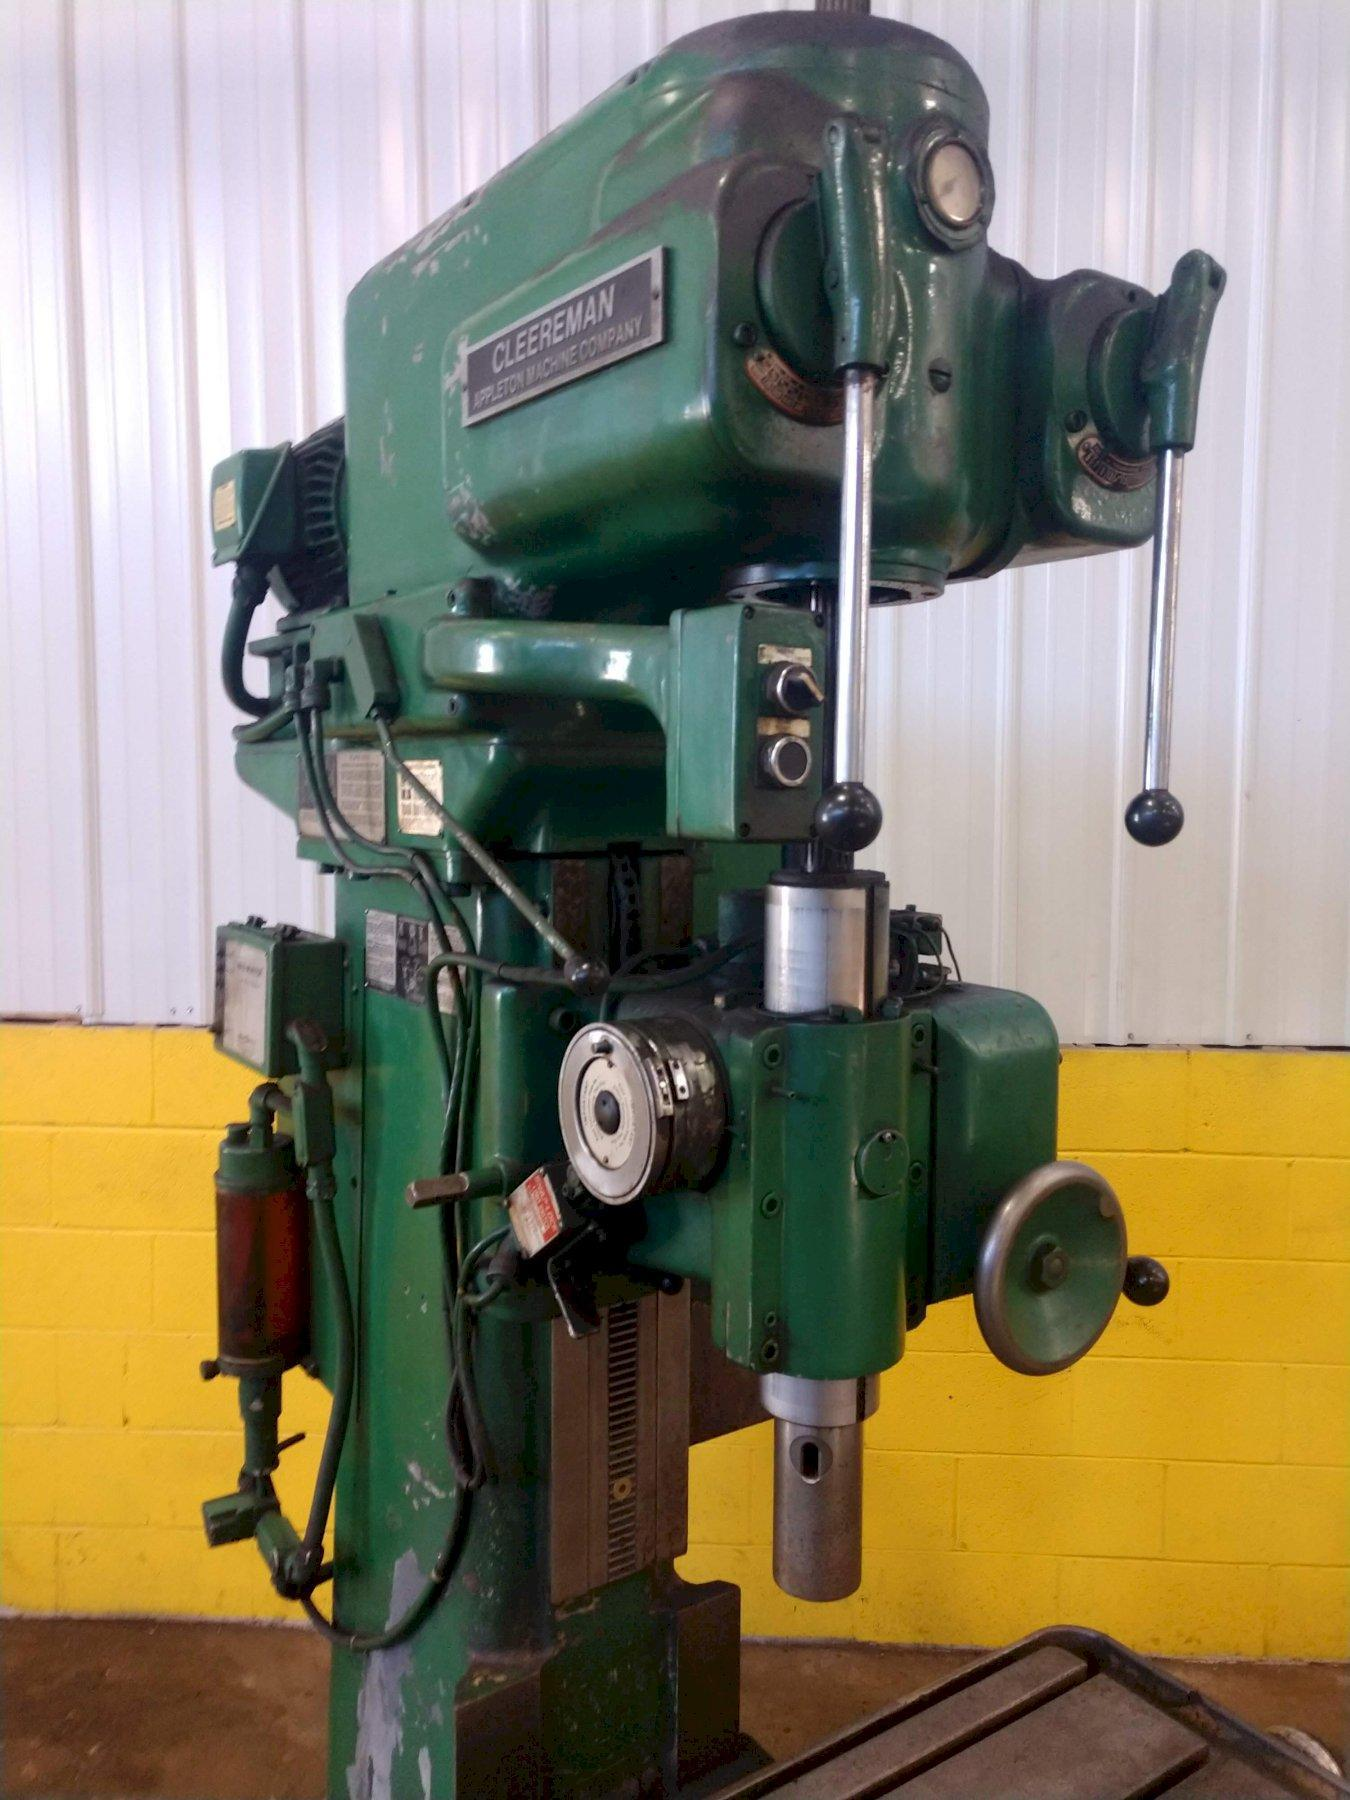 """30"""" CLEEREMAN MODEL #30C SINGLE SPINDLE DRILL, 1000 RPM SPINDLE: STOCK #13427"""